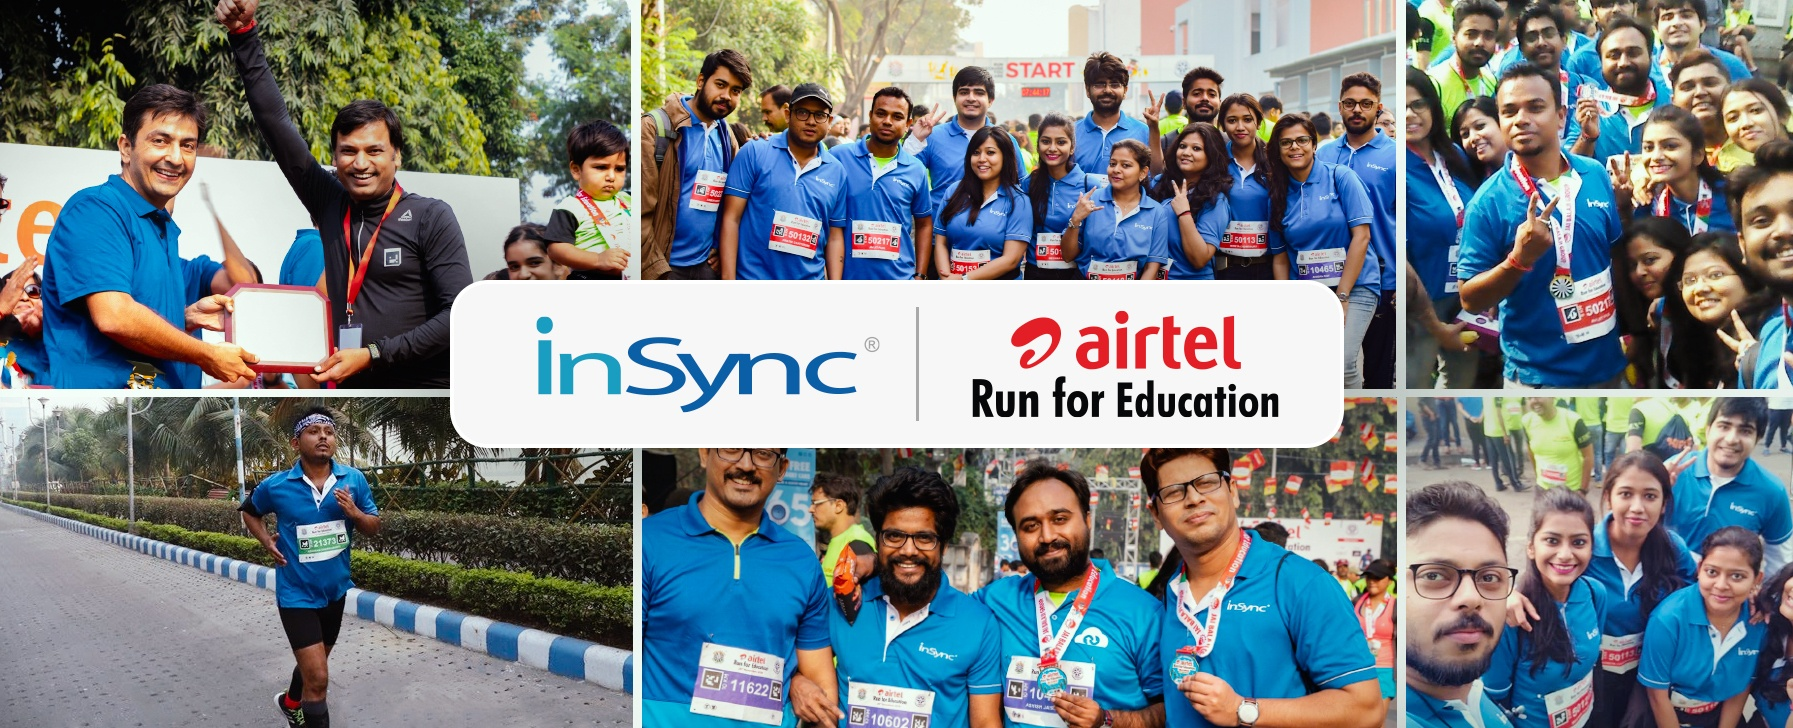 InSync bags 'The Most Vibrant Corporate Award' for the Second Time at Airtel Run for Education 2018